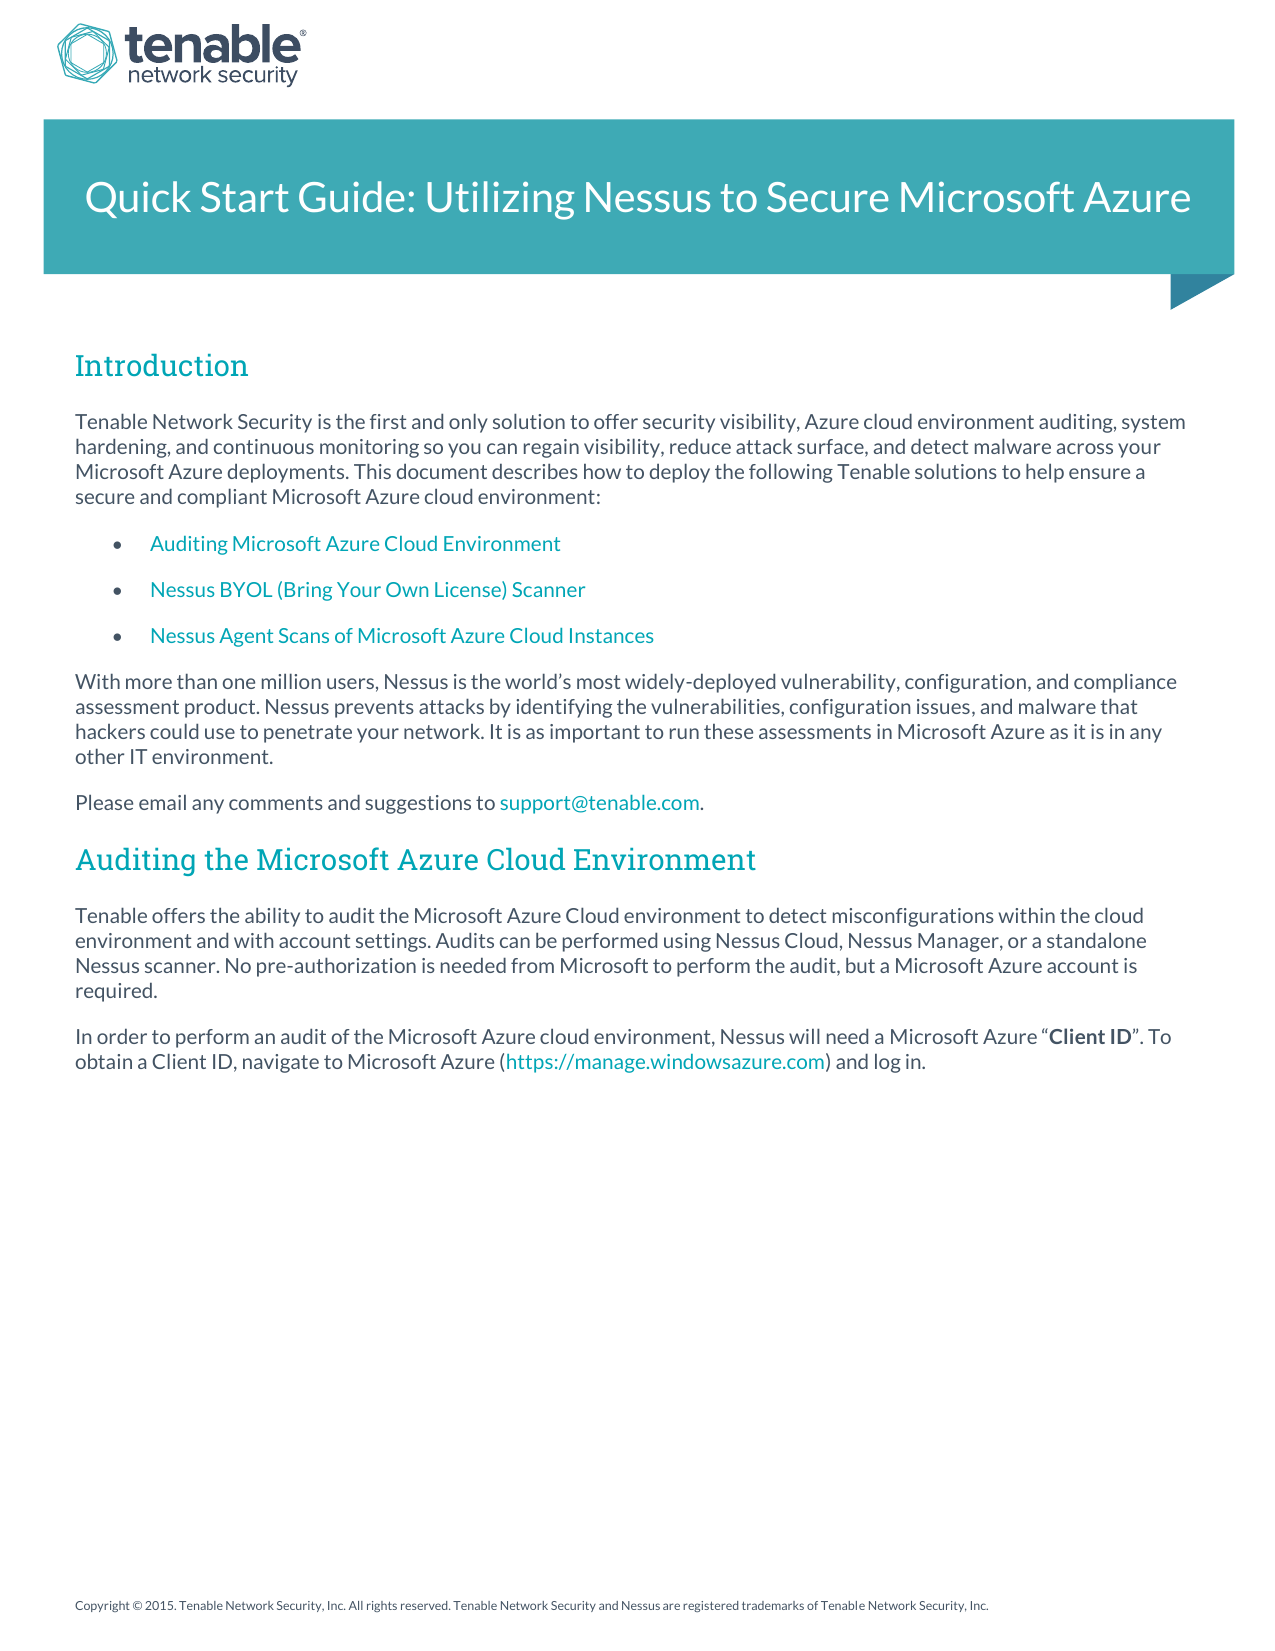 Quick Start Guide: Utilizing Nessus to Secure Microsoft Azure